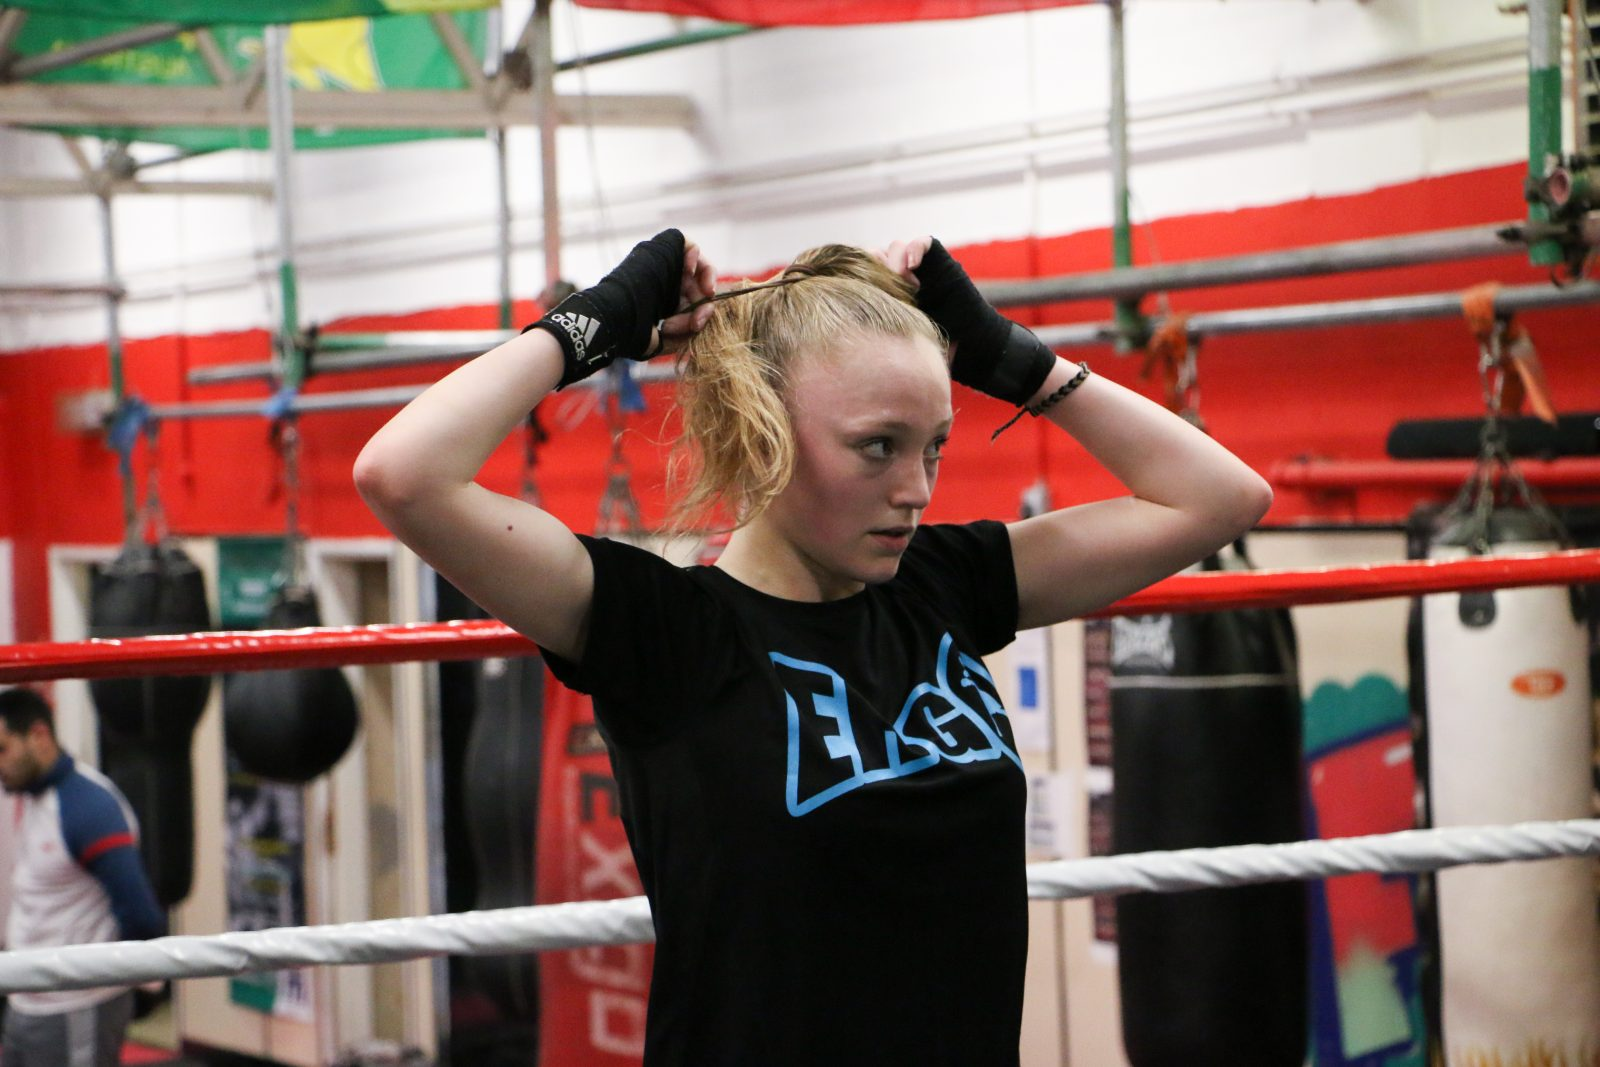 A young person with blonde hair wears a black t-shirt and thing black, fingerless gloves. They are tying their hair in a ponytail.